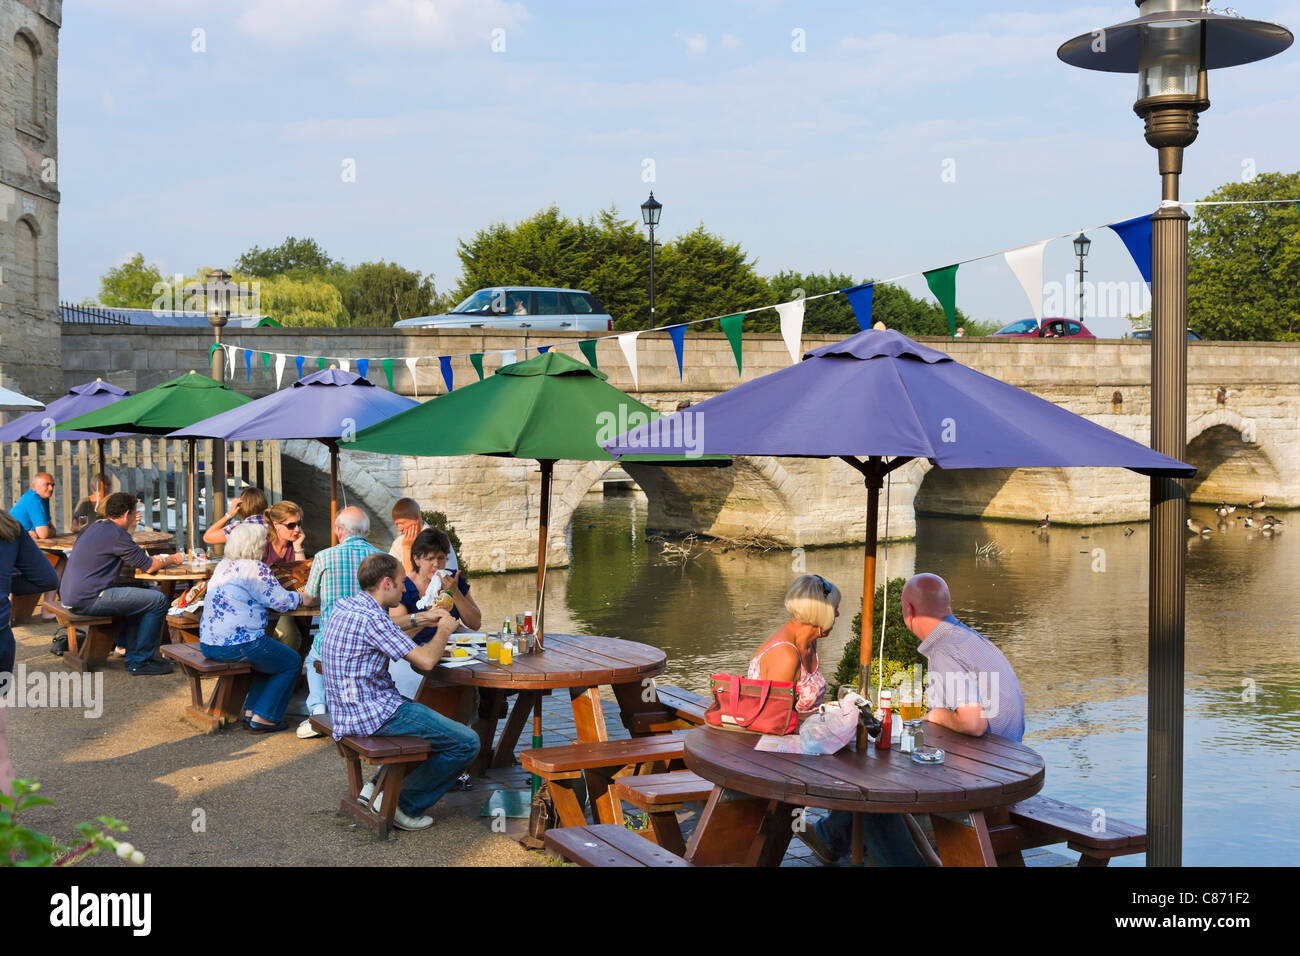 Pub terrace overlooking the River Avon at Cox's Yard in the early evening, Stratford-upon-Avon, Warwickshire, - Stock Image